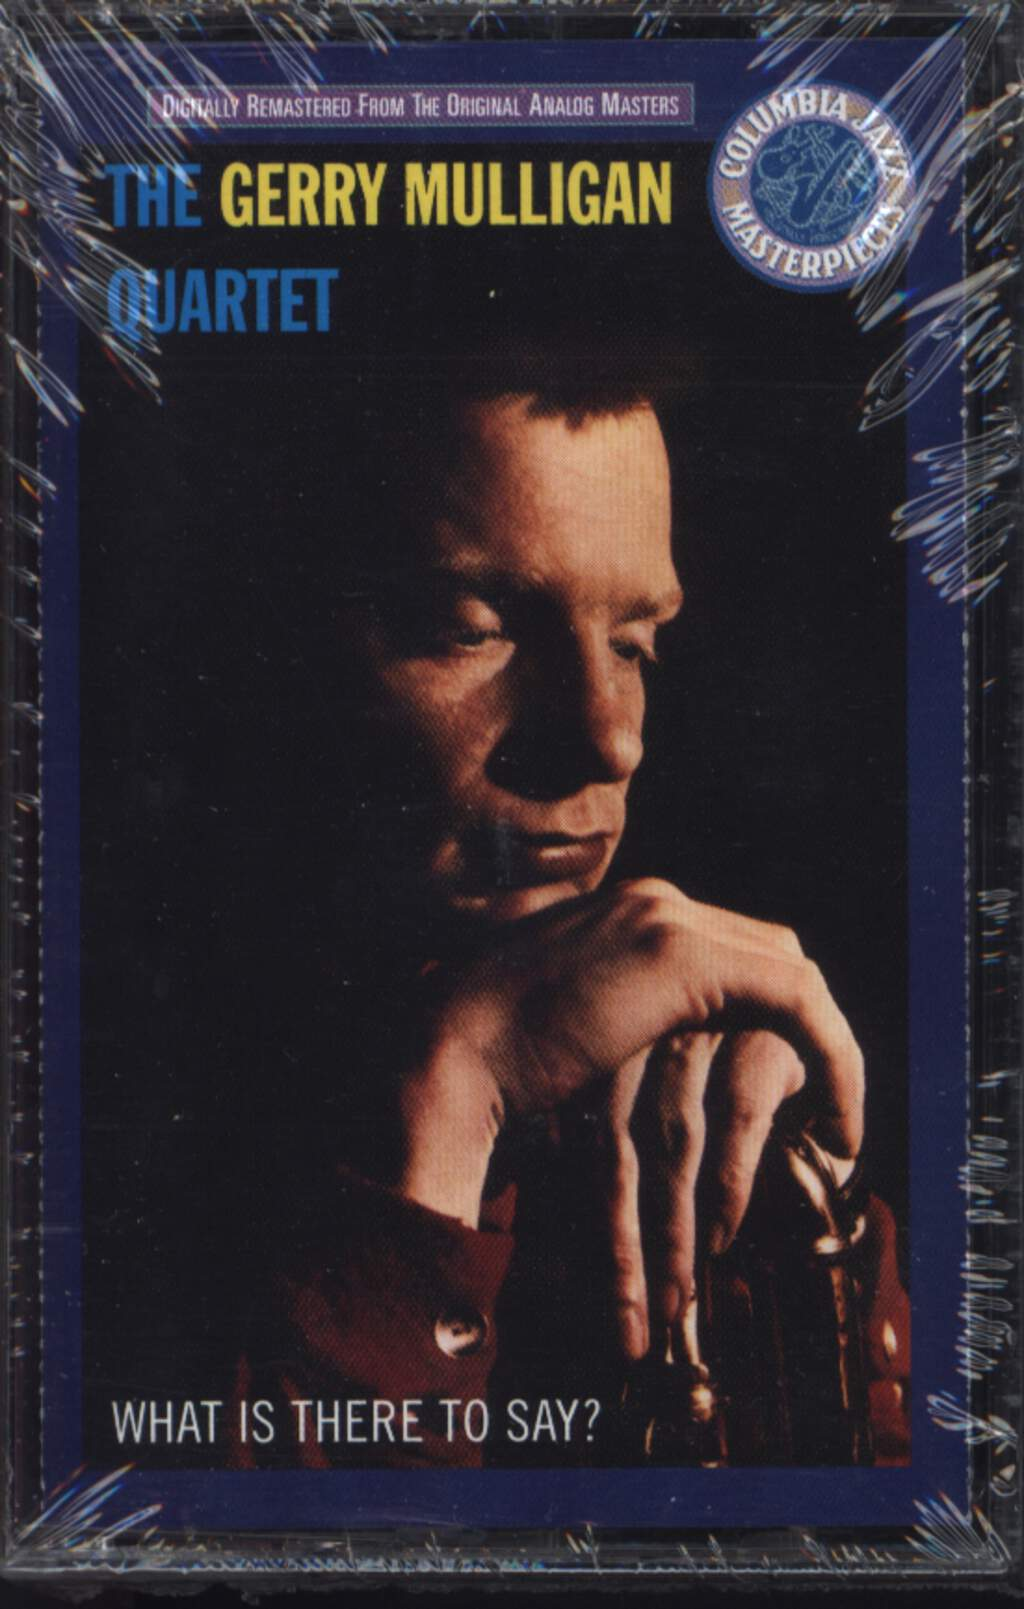 Gerry Mulligan Quartet: What Is There To Say?, Compact Cassette